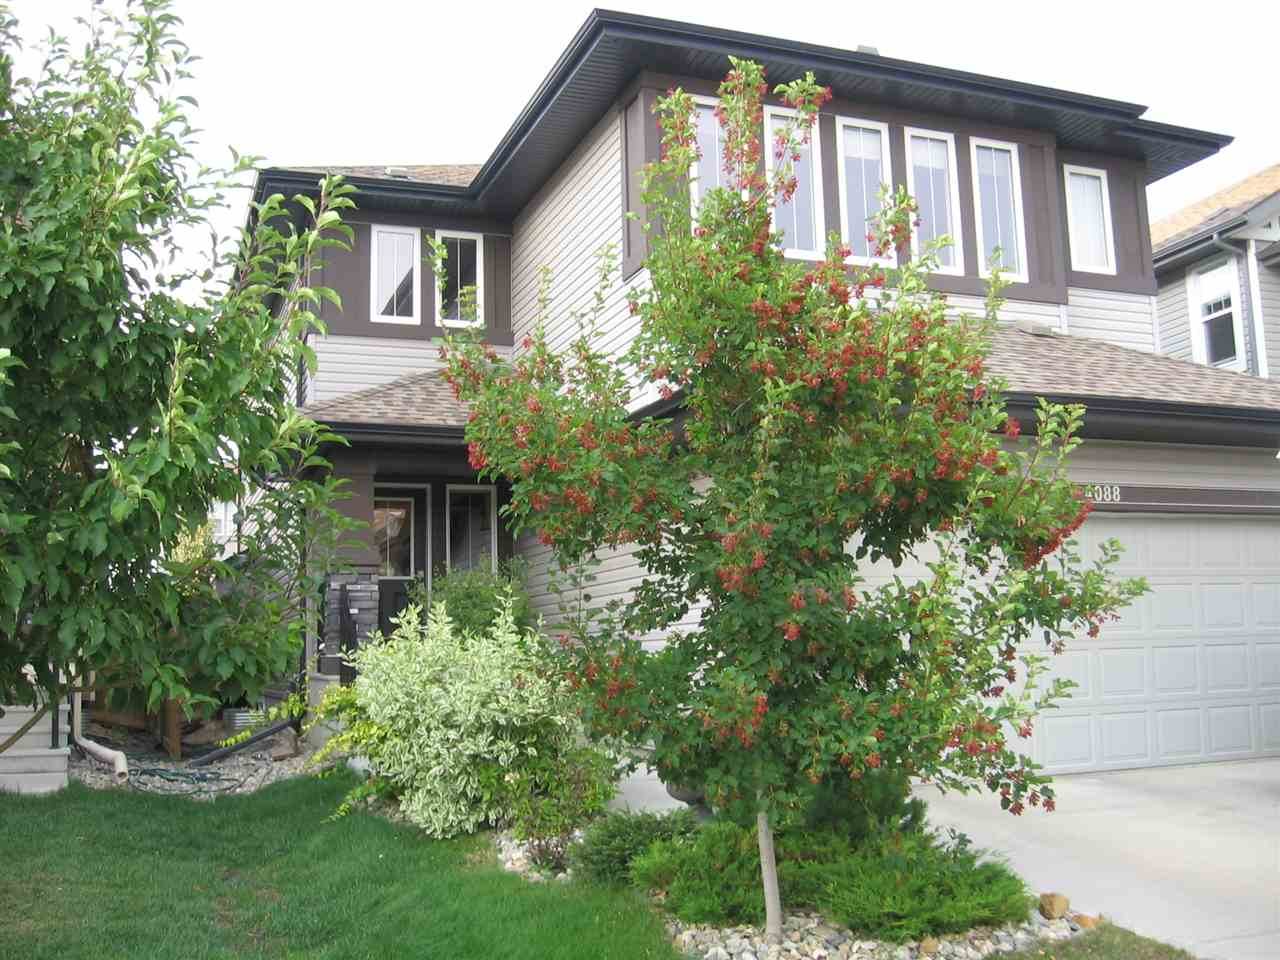 Main Photo: 4088 Summerland Drive: Sherwood Park House for sale : MLS®# E4124707